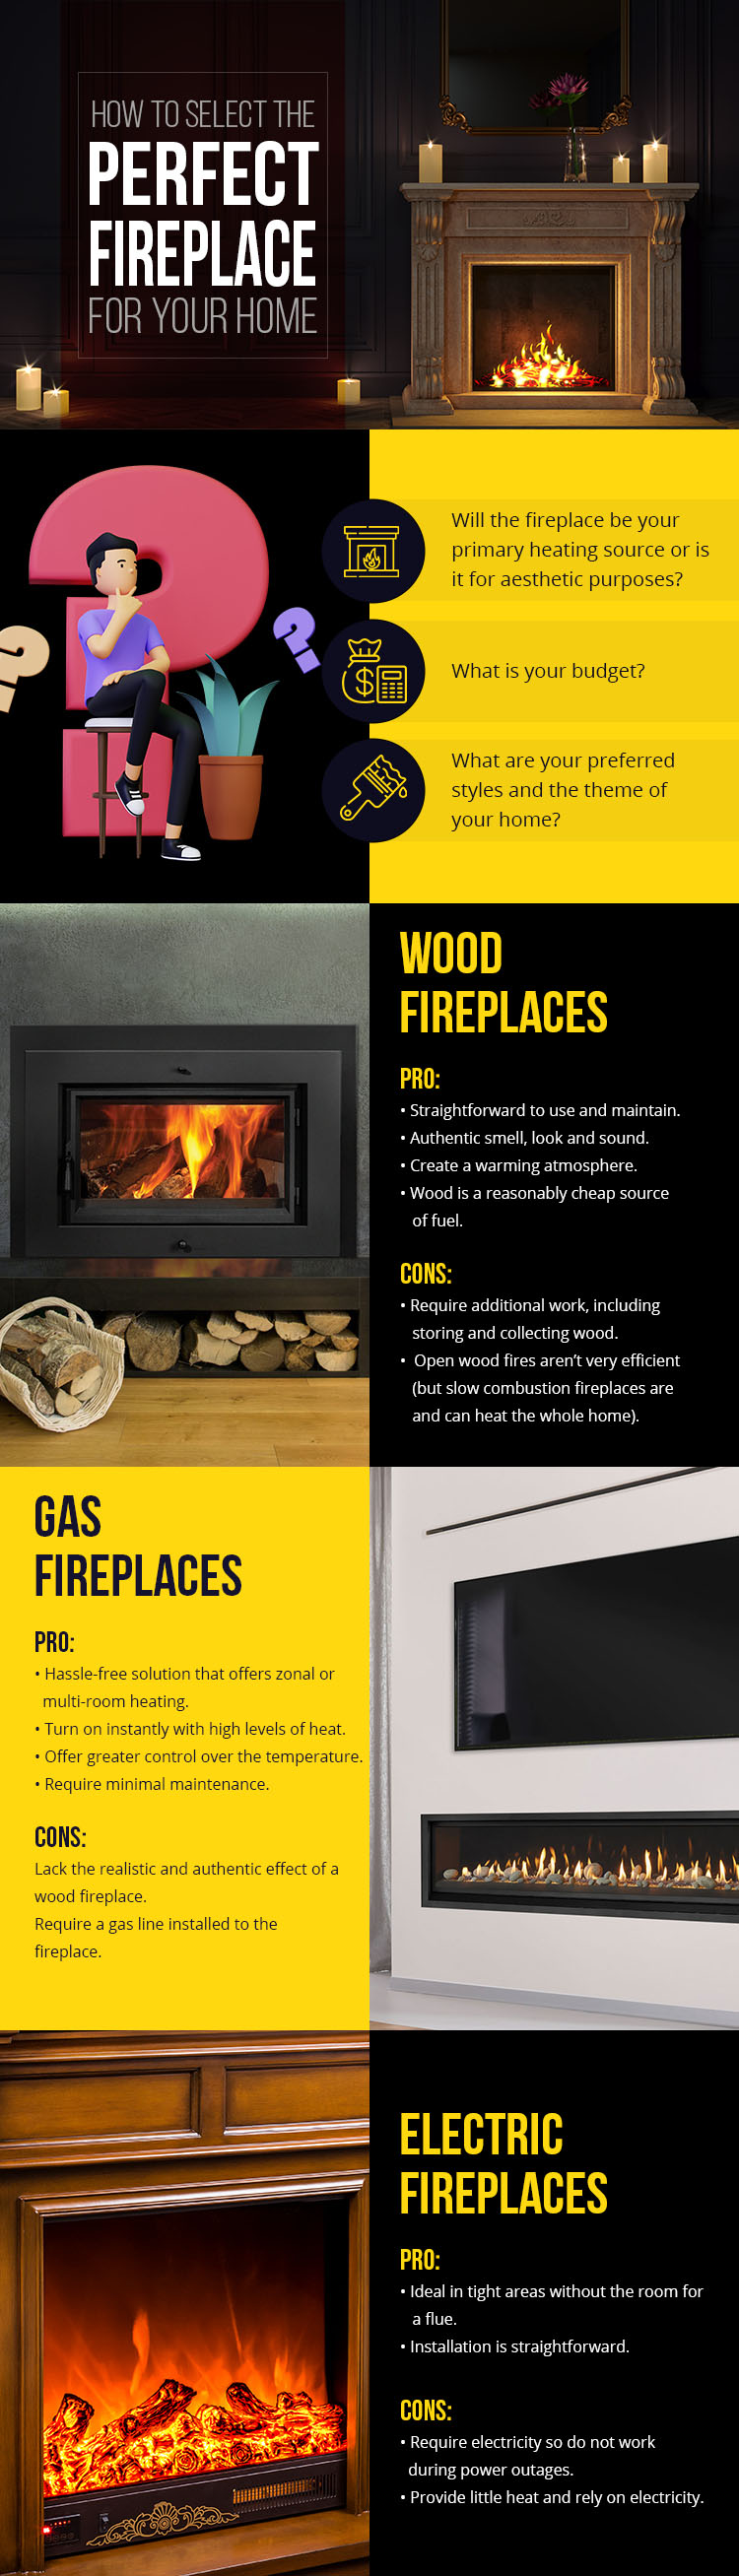 How to Select the Perfect Fireplace for Your Home